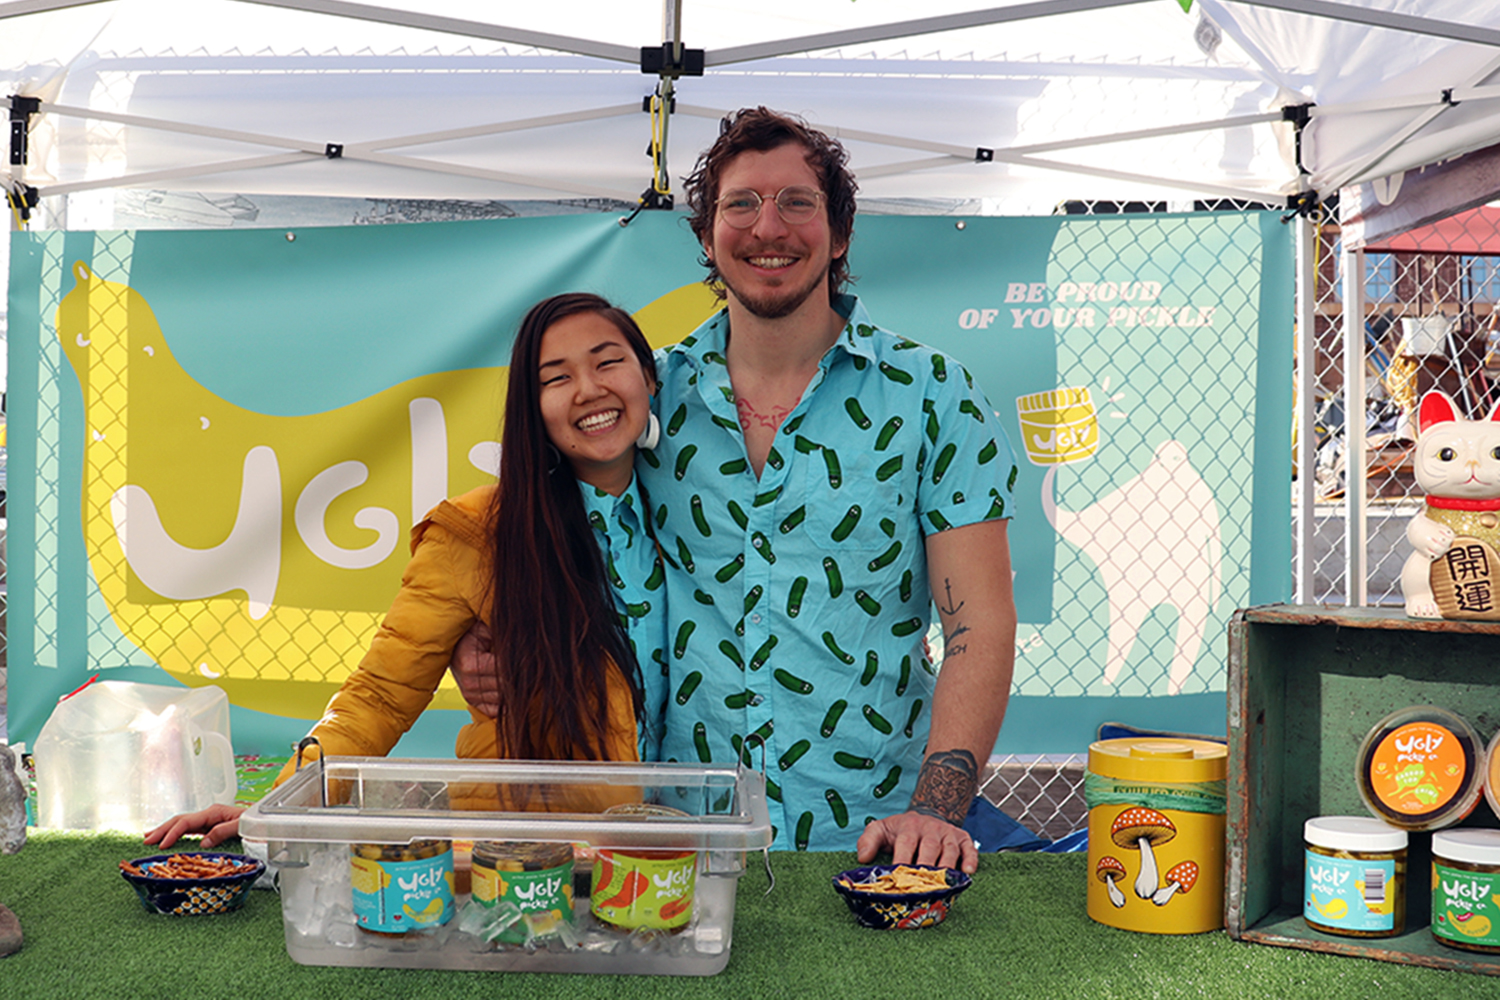 Ugly Pickle Co  Makes Food Waste Fun and Delicious | CUESA